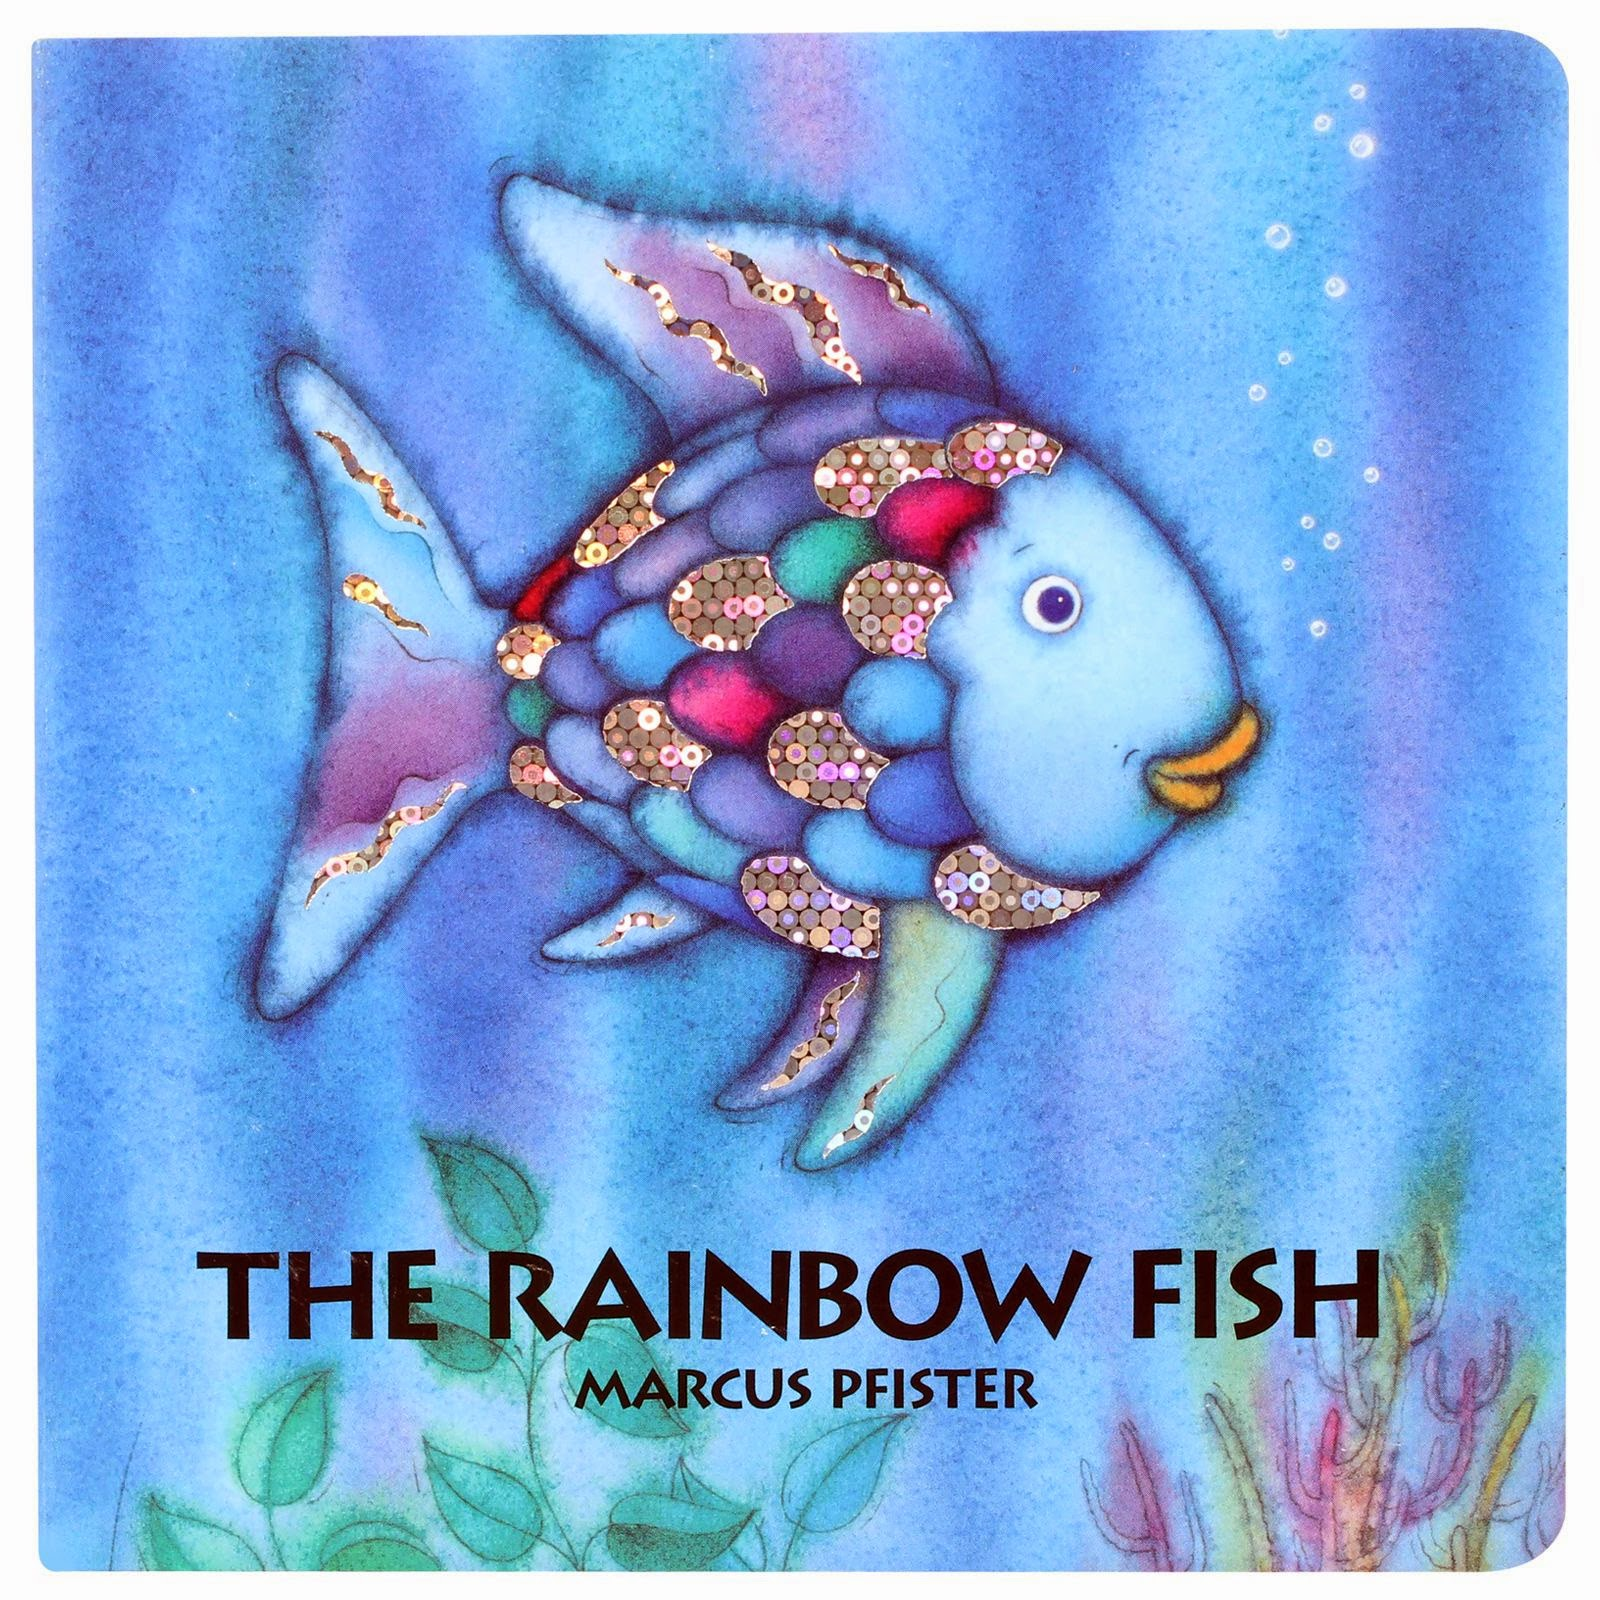 The rainbow fish story star slinger for The rainbow fish